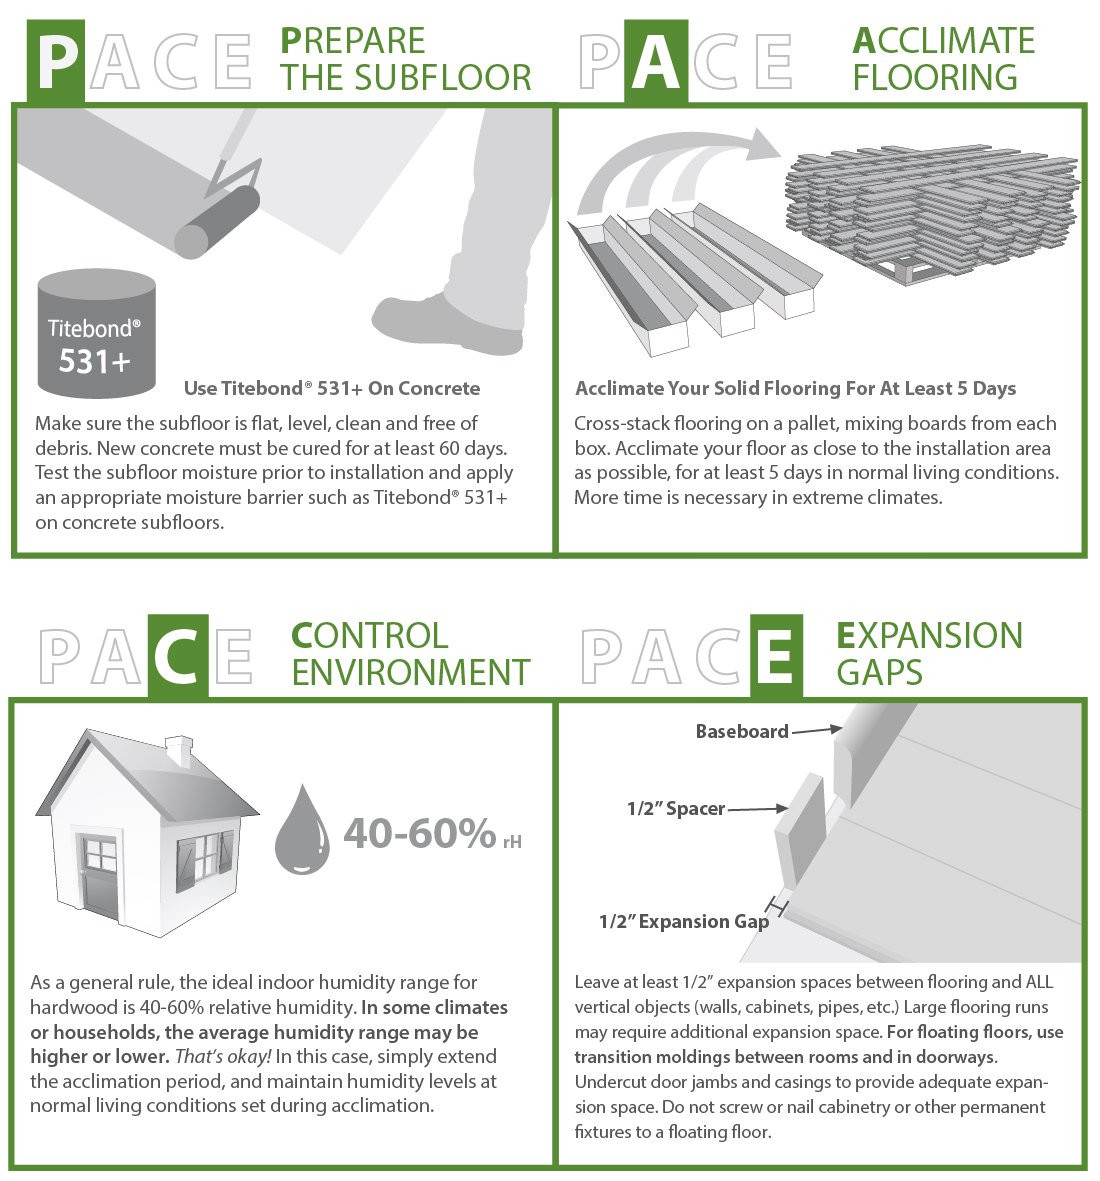 18 Famous Hardwood Flooring On Concrete Subfloor 2021 free download hardwood flooring on concrete subfloor of nail down solid flooring within an error occurred